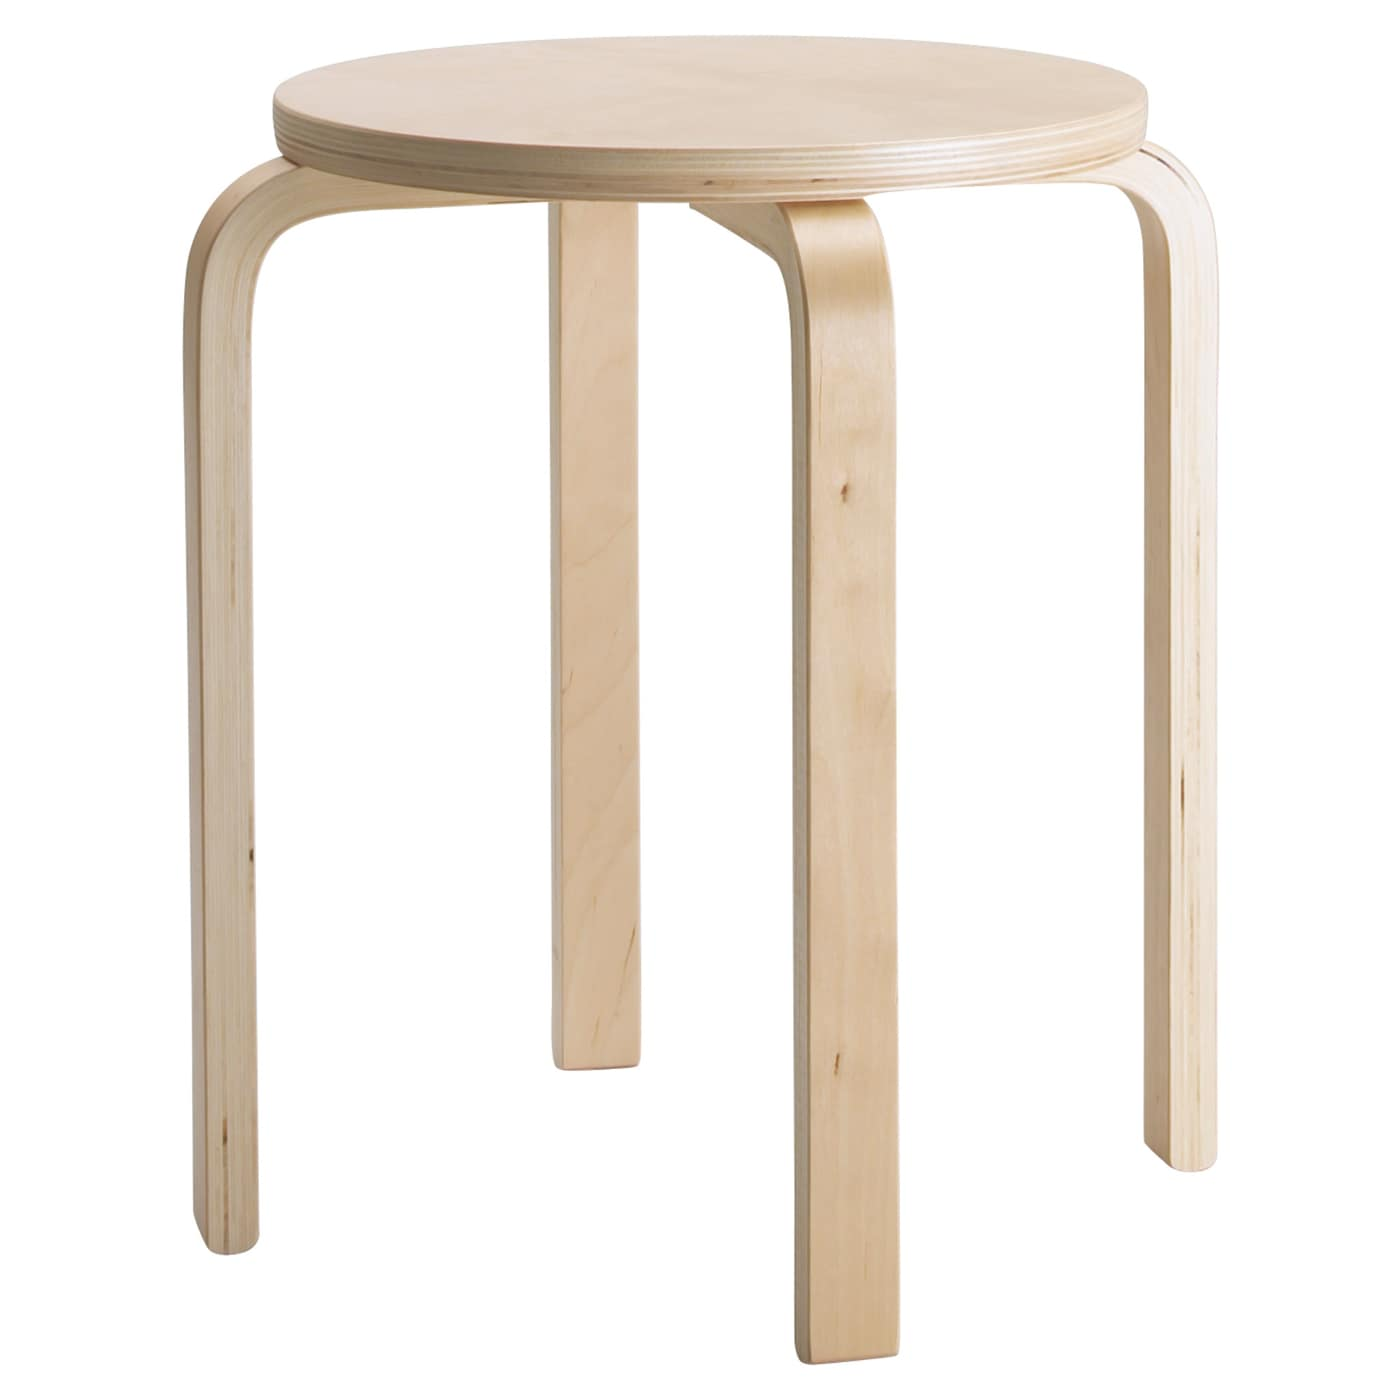 Stools Kitchen Dining Stools Ikea # Meuble Long Et Bas Ikea